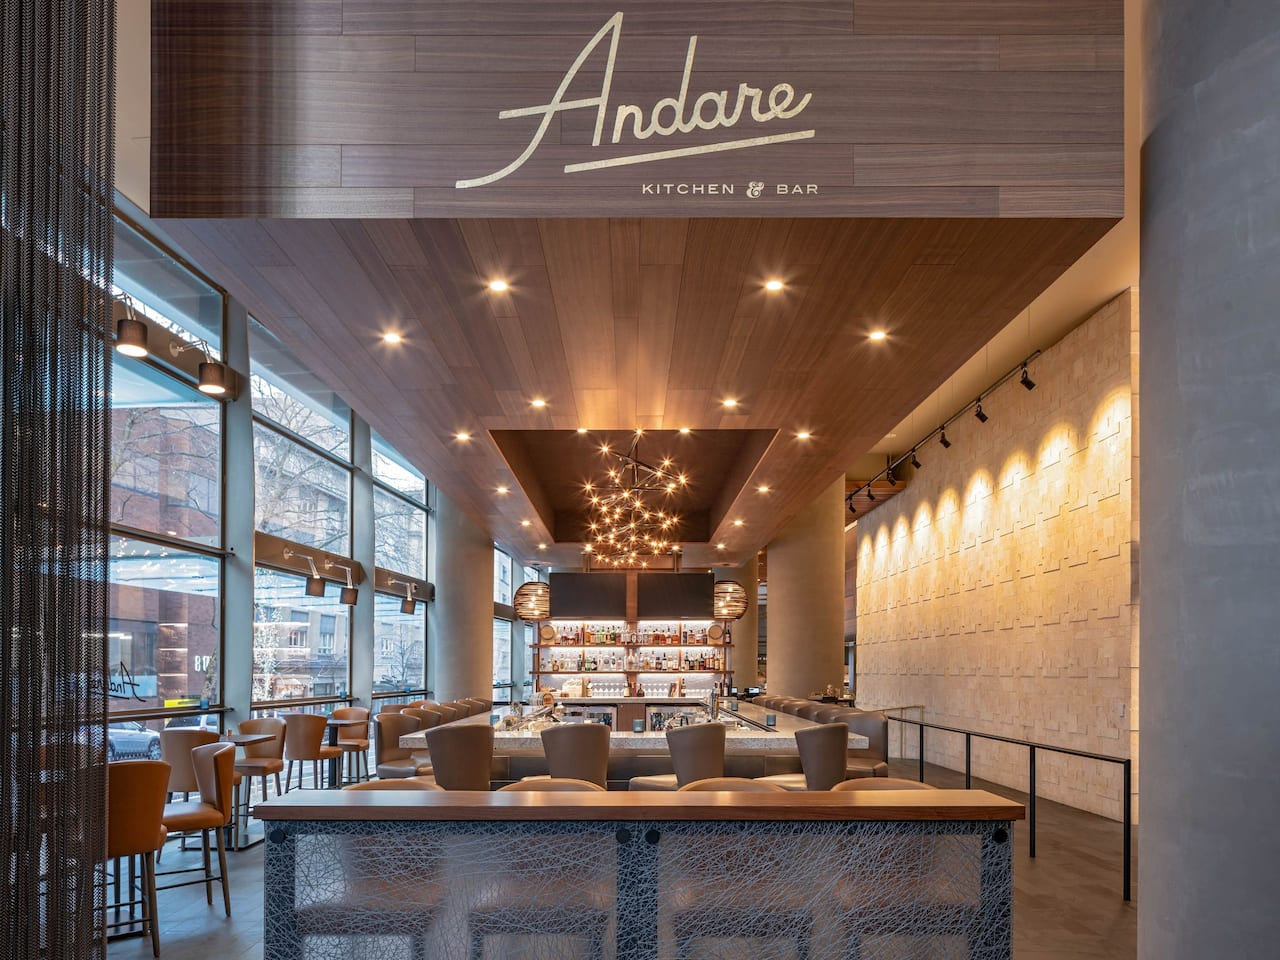 Andare Kitchen & Bar